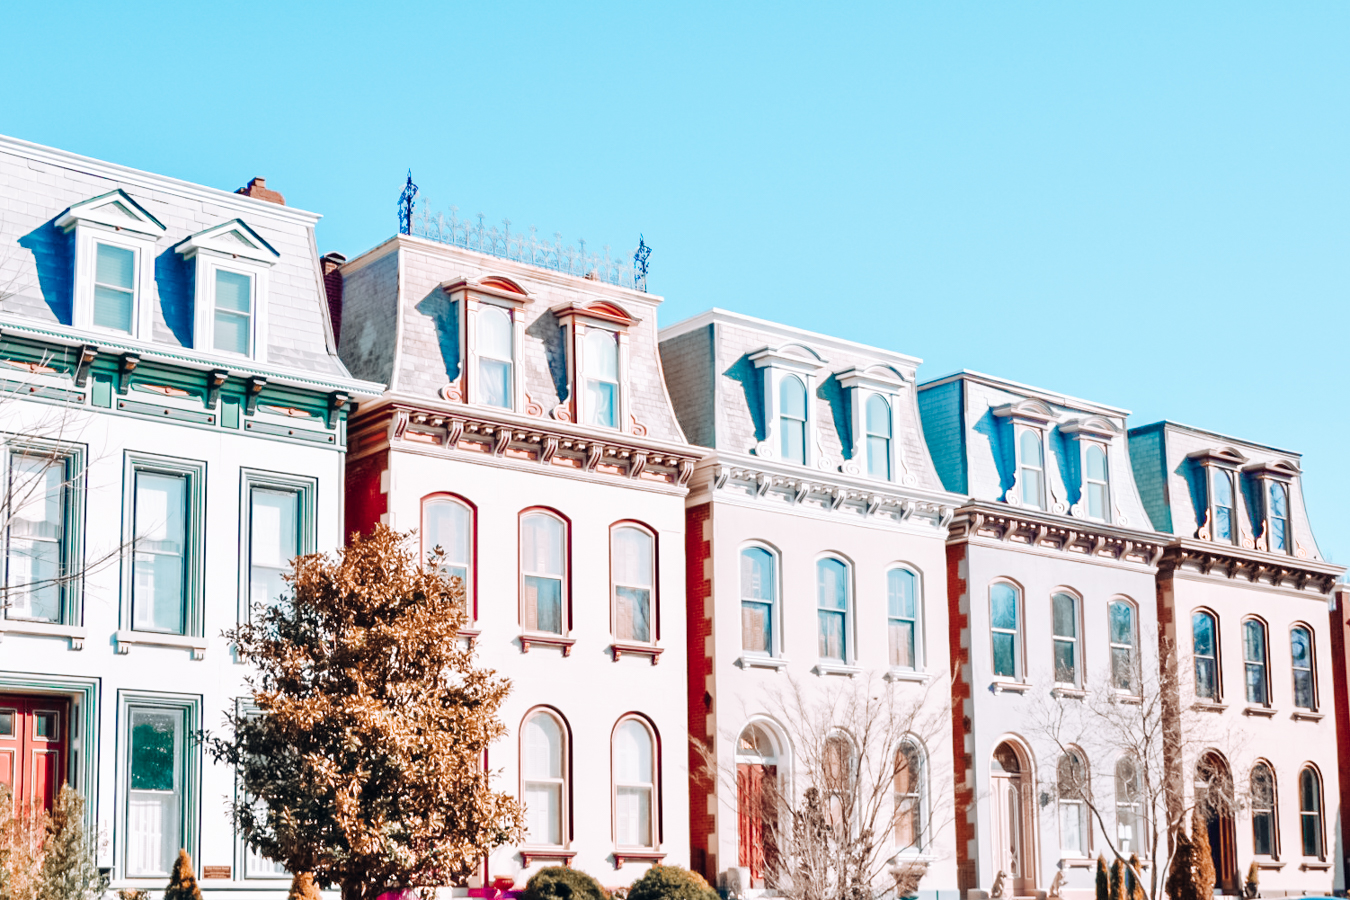 Colorful houses in St. Louis